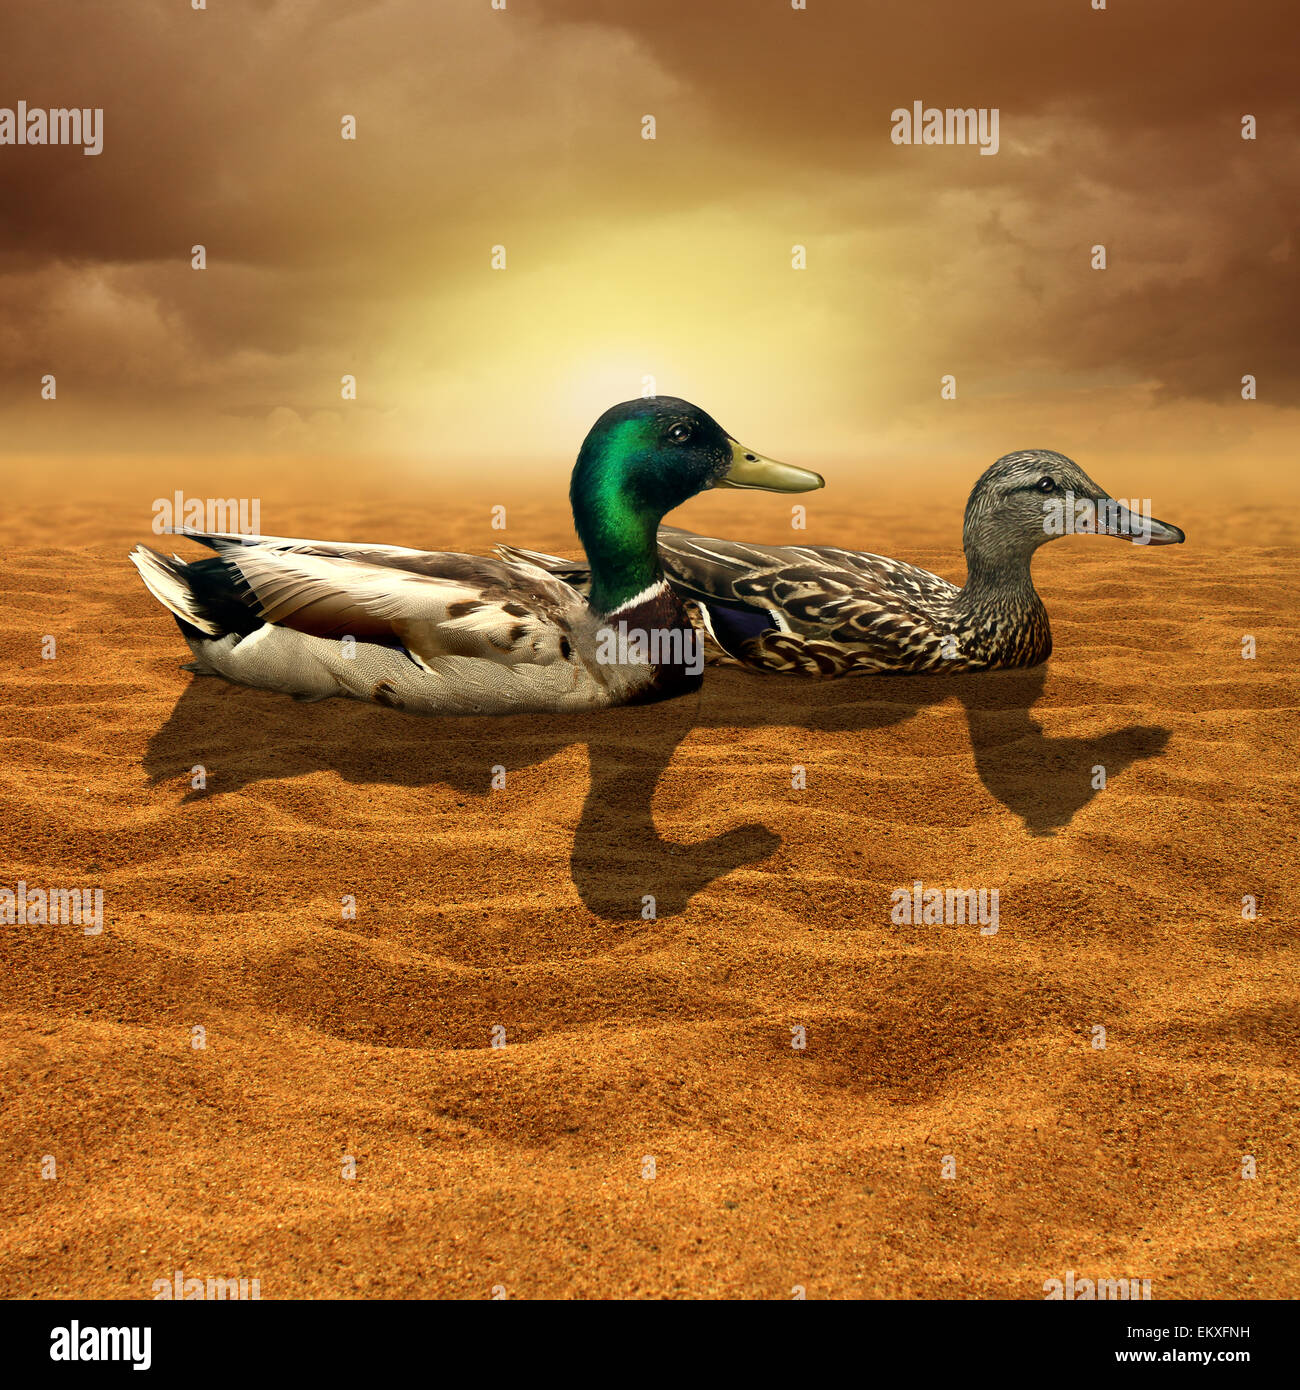 Climate change and limited opportunity concept as a pair of ducks in the middle of a dry hot desert as a bad business - Stock Image